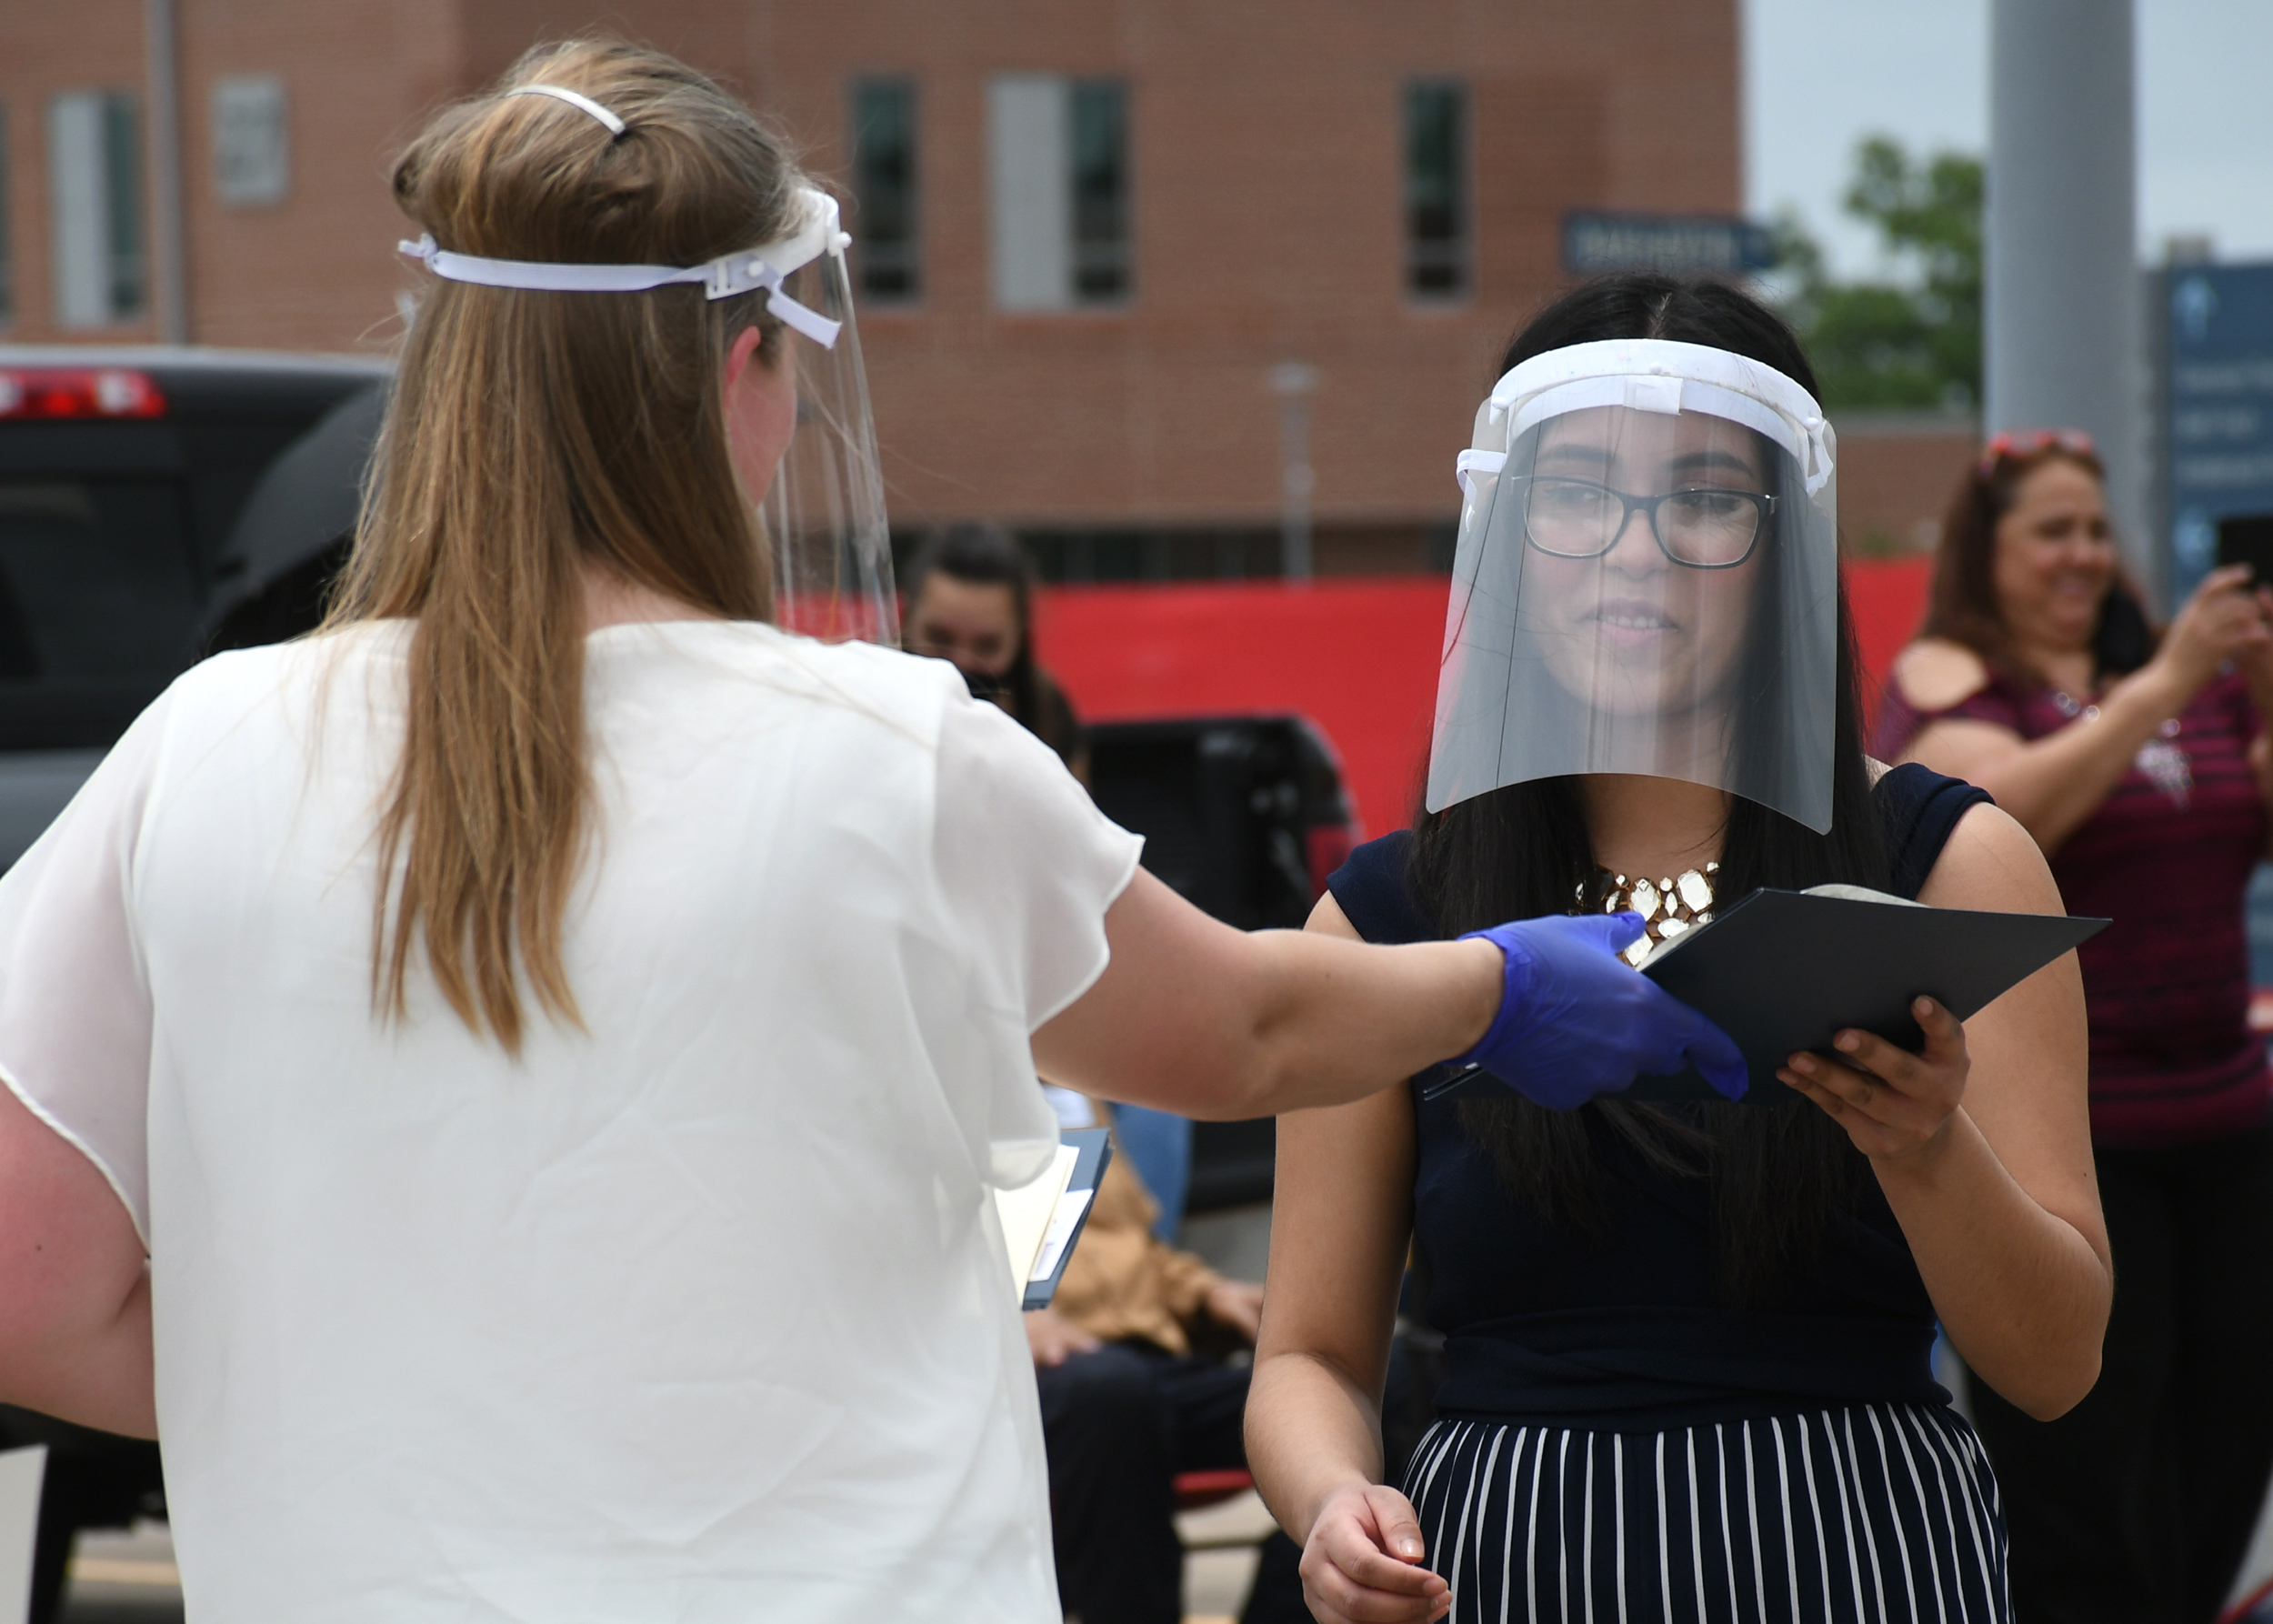 San Jacinto College near Houston recently held a drive-in graduation ceremony for students in its radiography program.